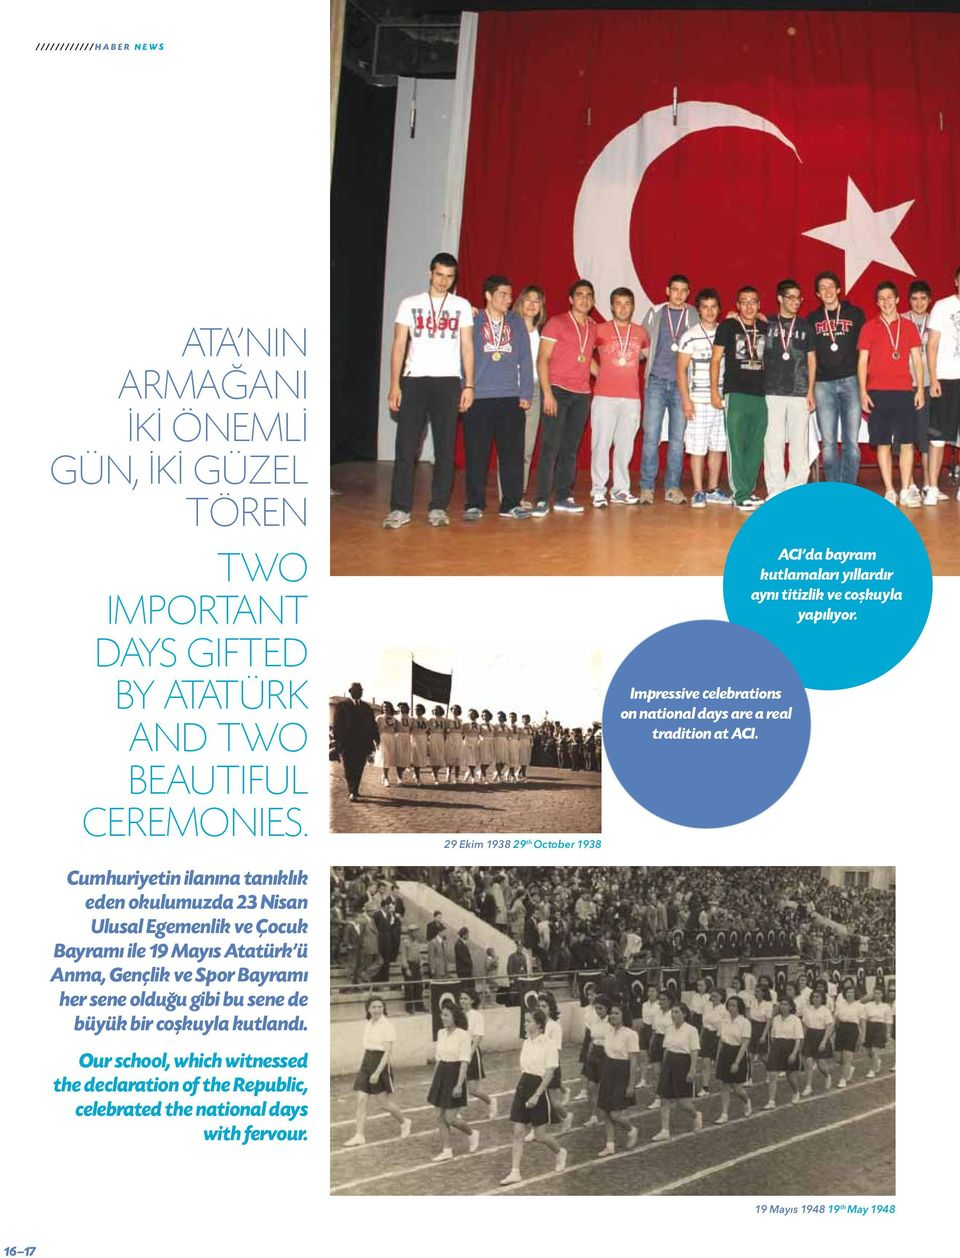 bu sene de büyük bir coşkuyla kutlandı. Our school, which witnessed the declaration of the Republic, celebrated the national days with fervour.